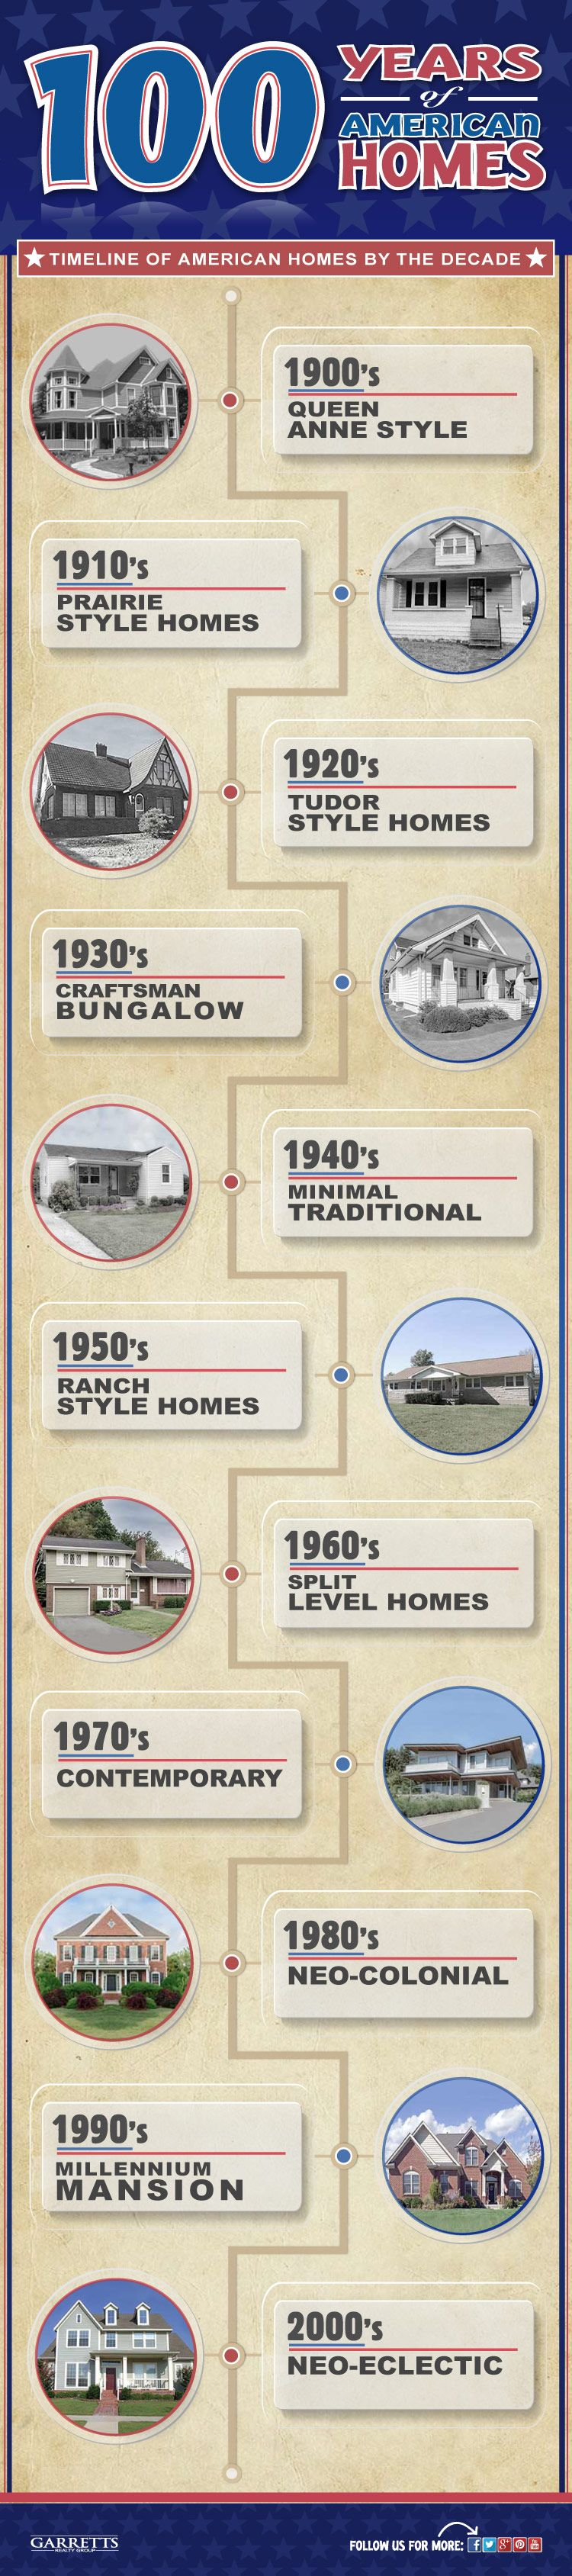 Different Styles Of American Homes By Each Decade 100 Years